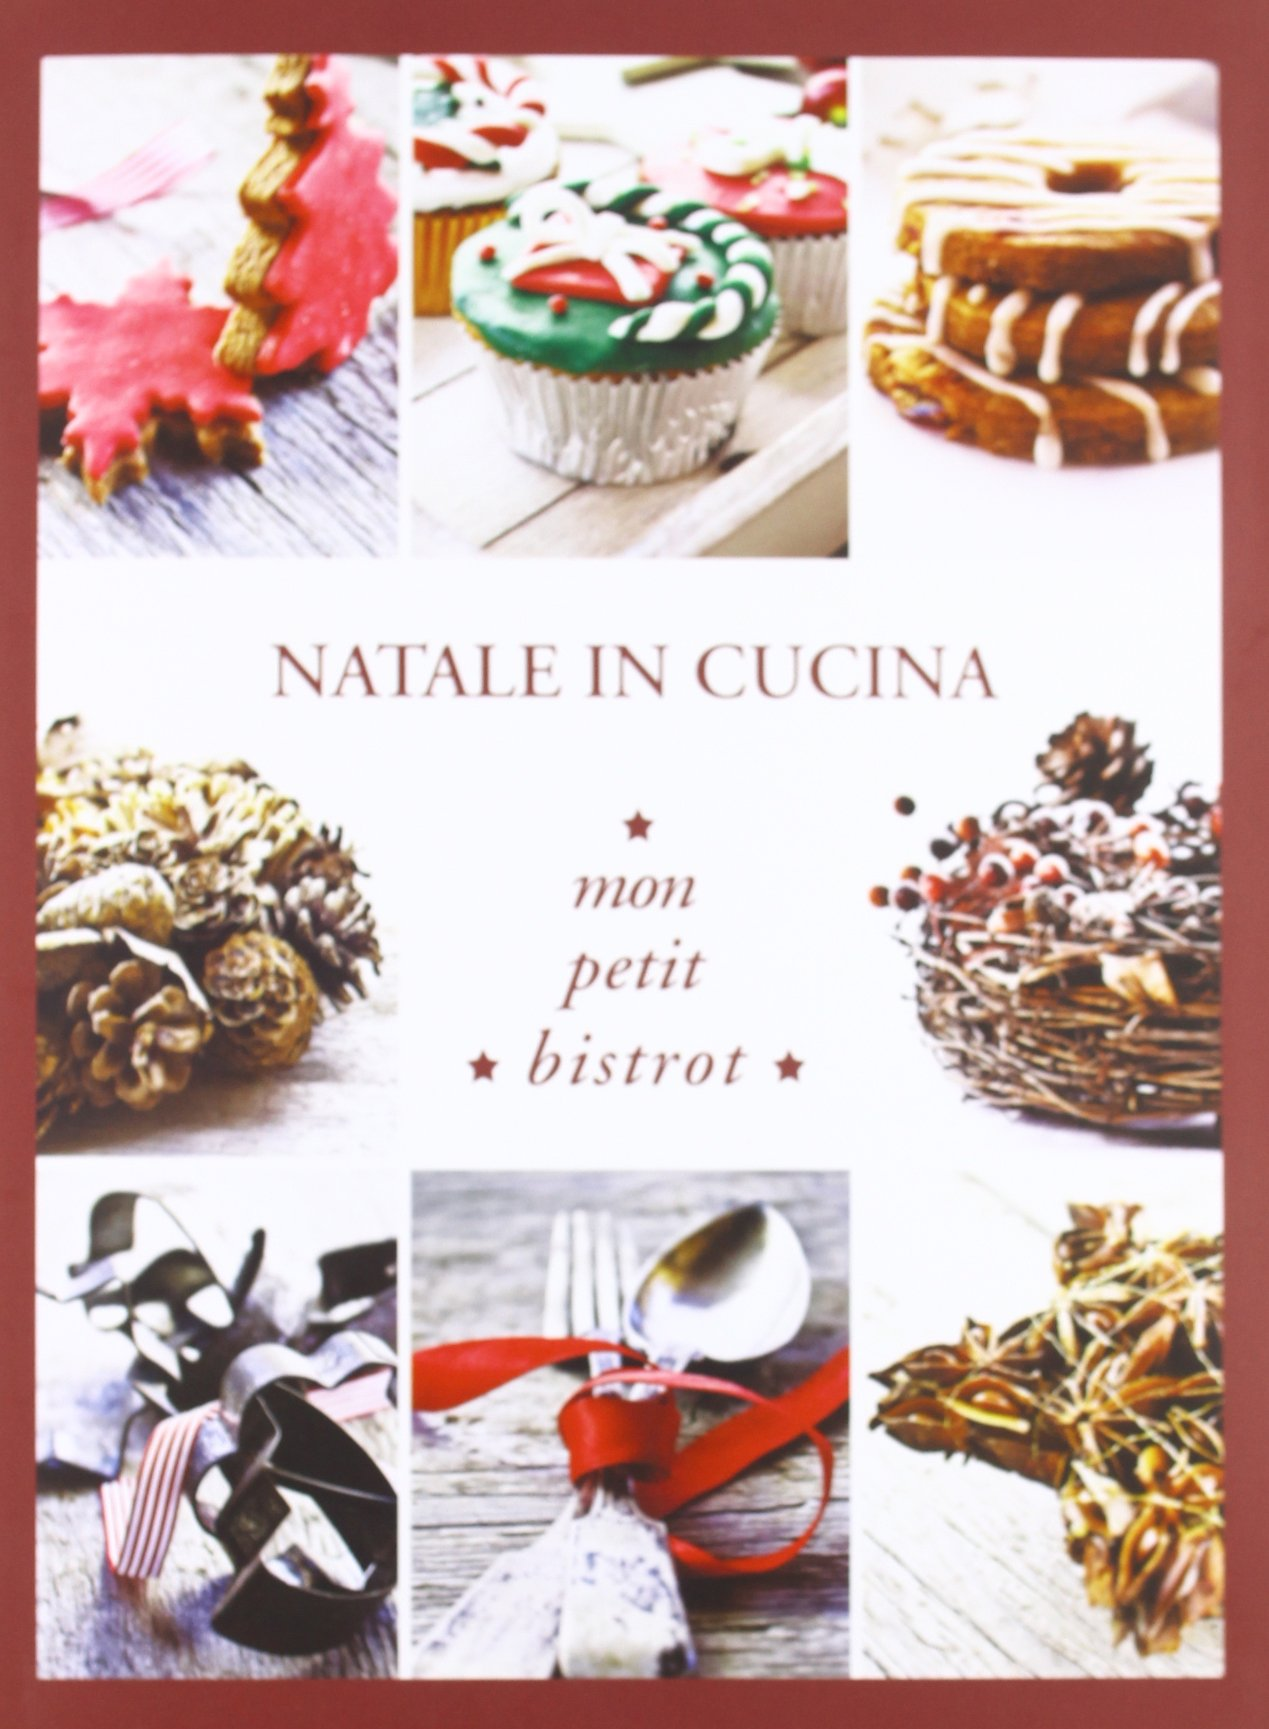 Natale in cucina! Mon petit bistrot: 9788897564140: Amazon ...